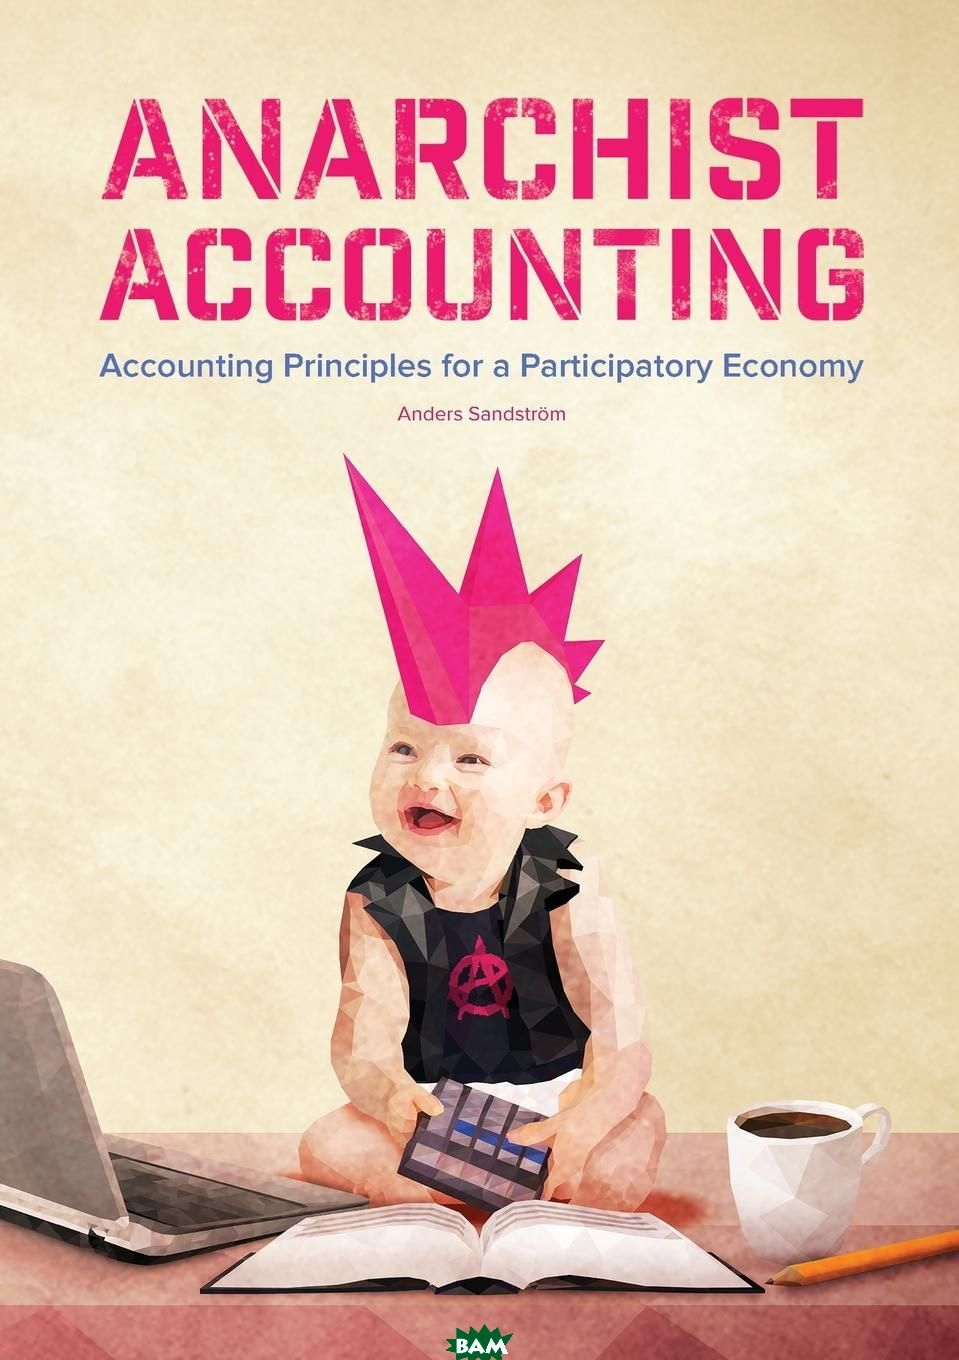 Anarchist Accounting. Accounting Principles for a Participatory Economy